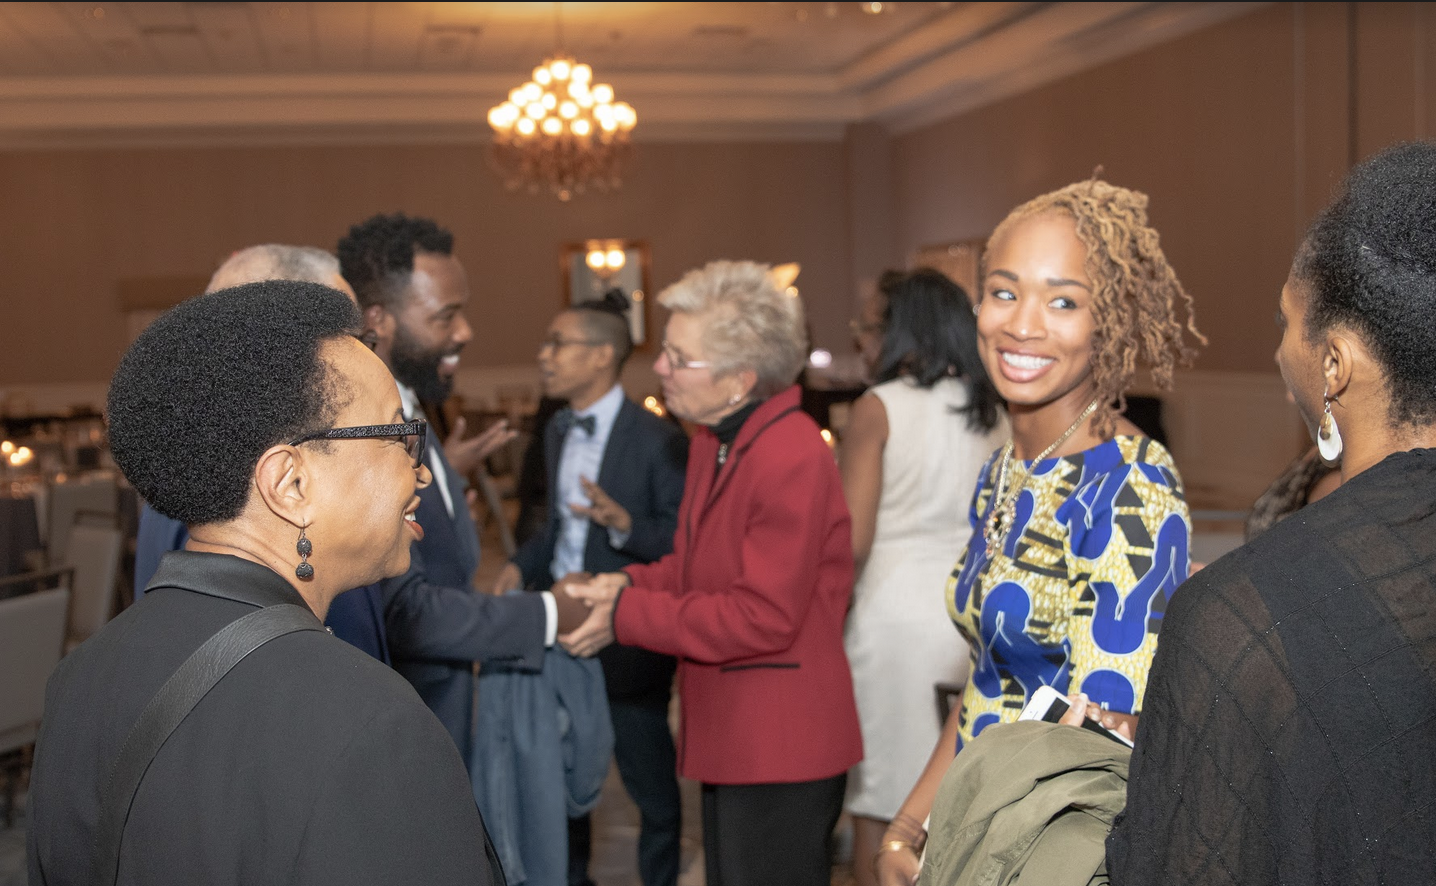 Friday, October 4, 201    9   Welcome Home Reception & Awards Ceremony: 7:00 PM - 10:00 PM  Trotter House - Multi-Purpose Room | 428 S. State Street Ann Arbor, MI 48109